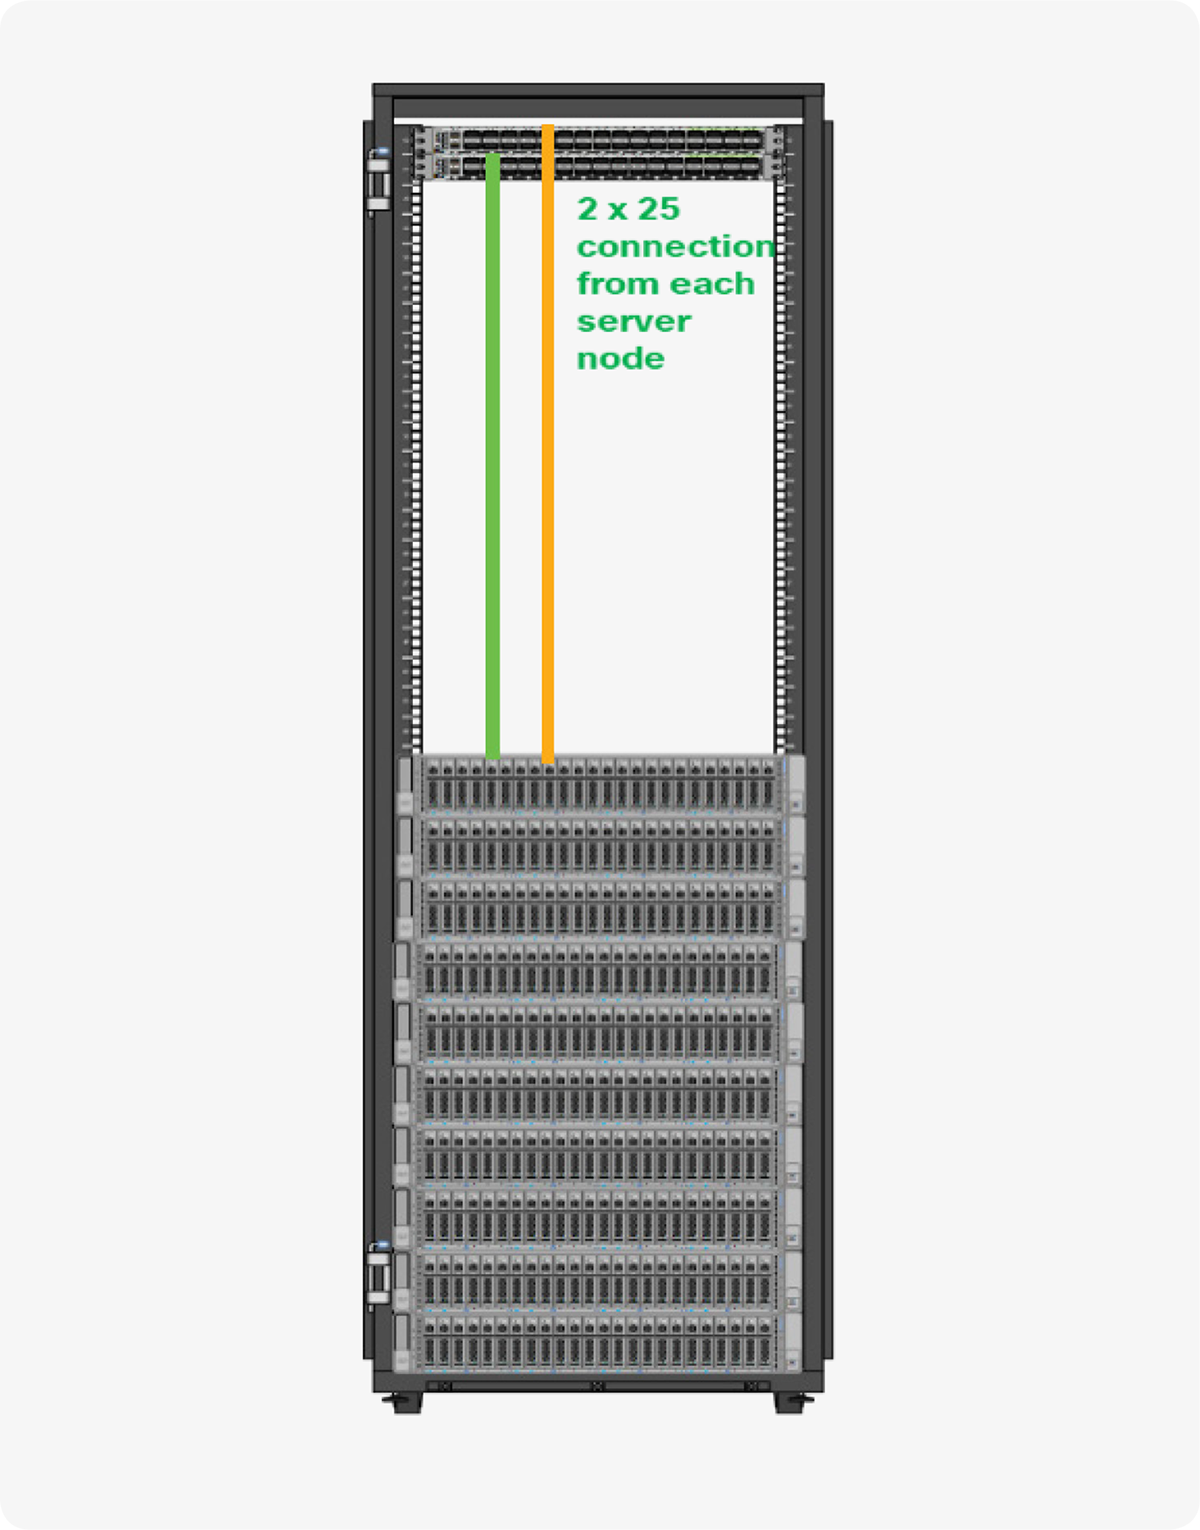 Cisco UCS C4200 Rack Server Chassis with C125 M5 Server Node reference architecture